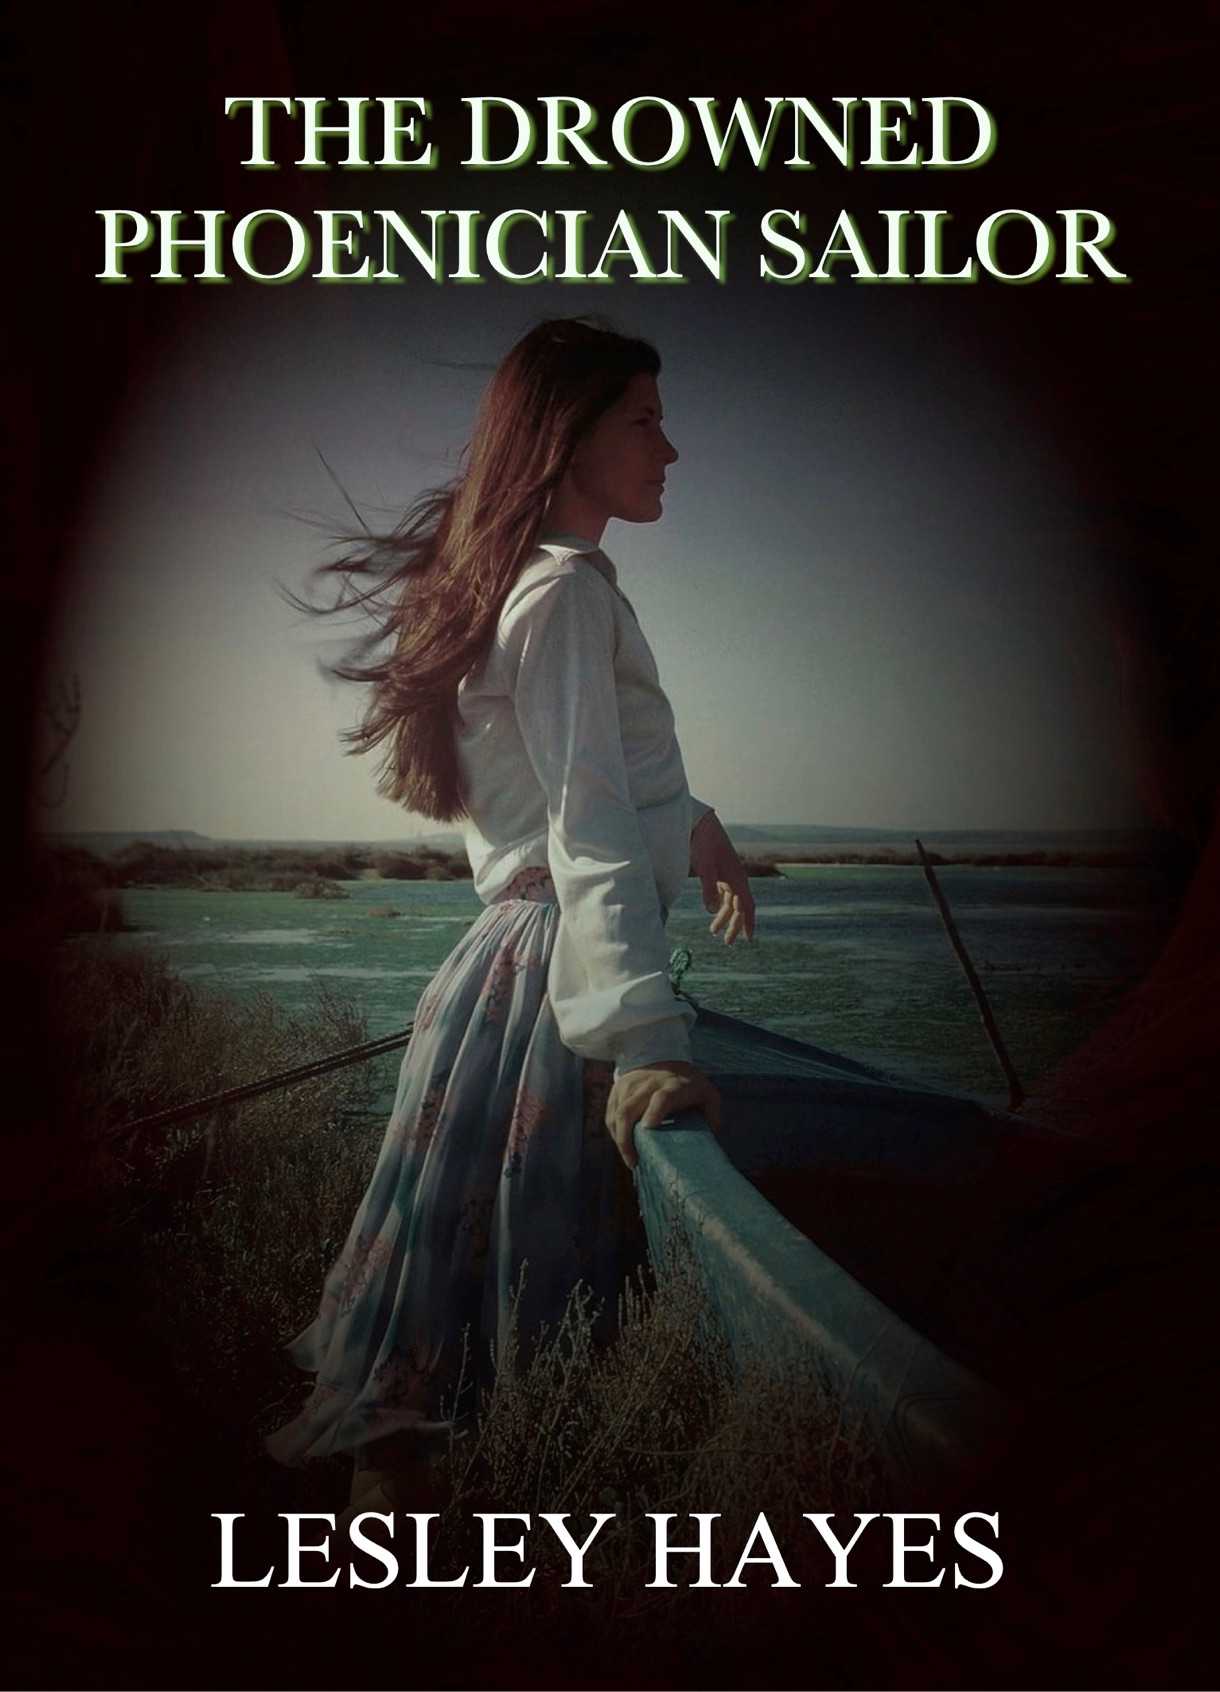 The Drowned Phoenician Sailor